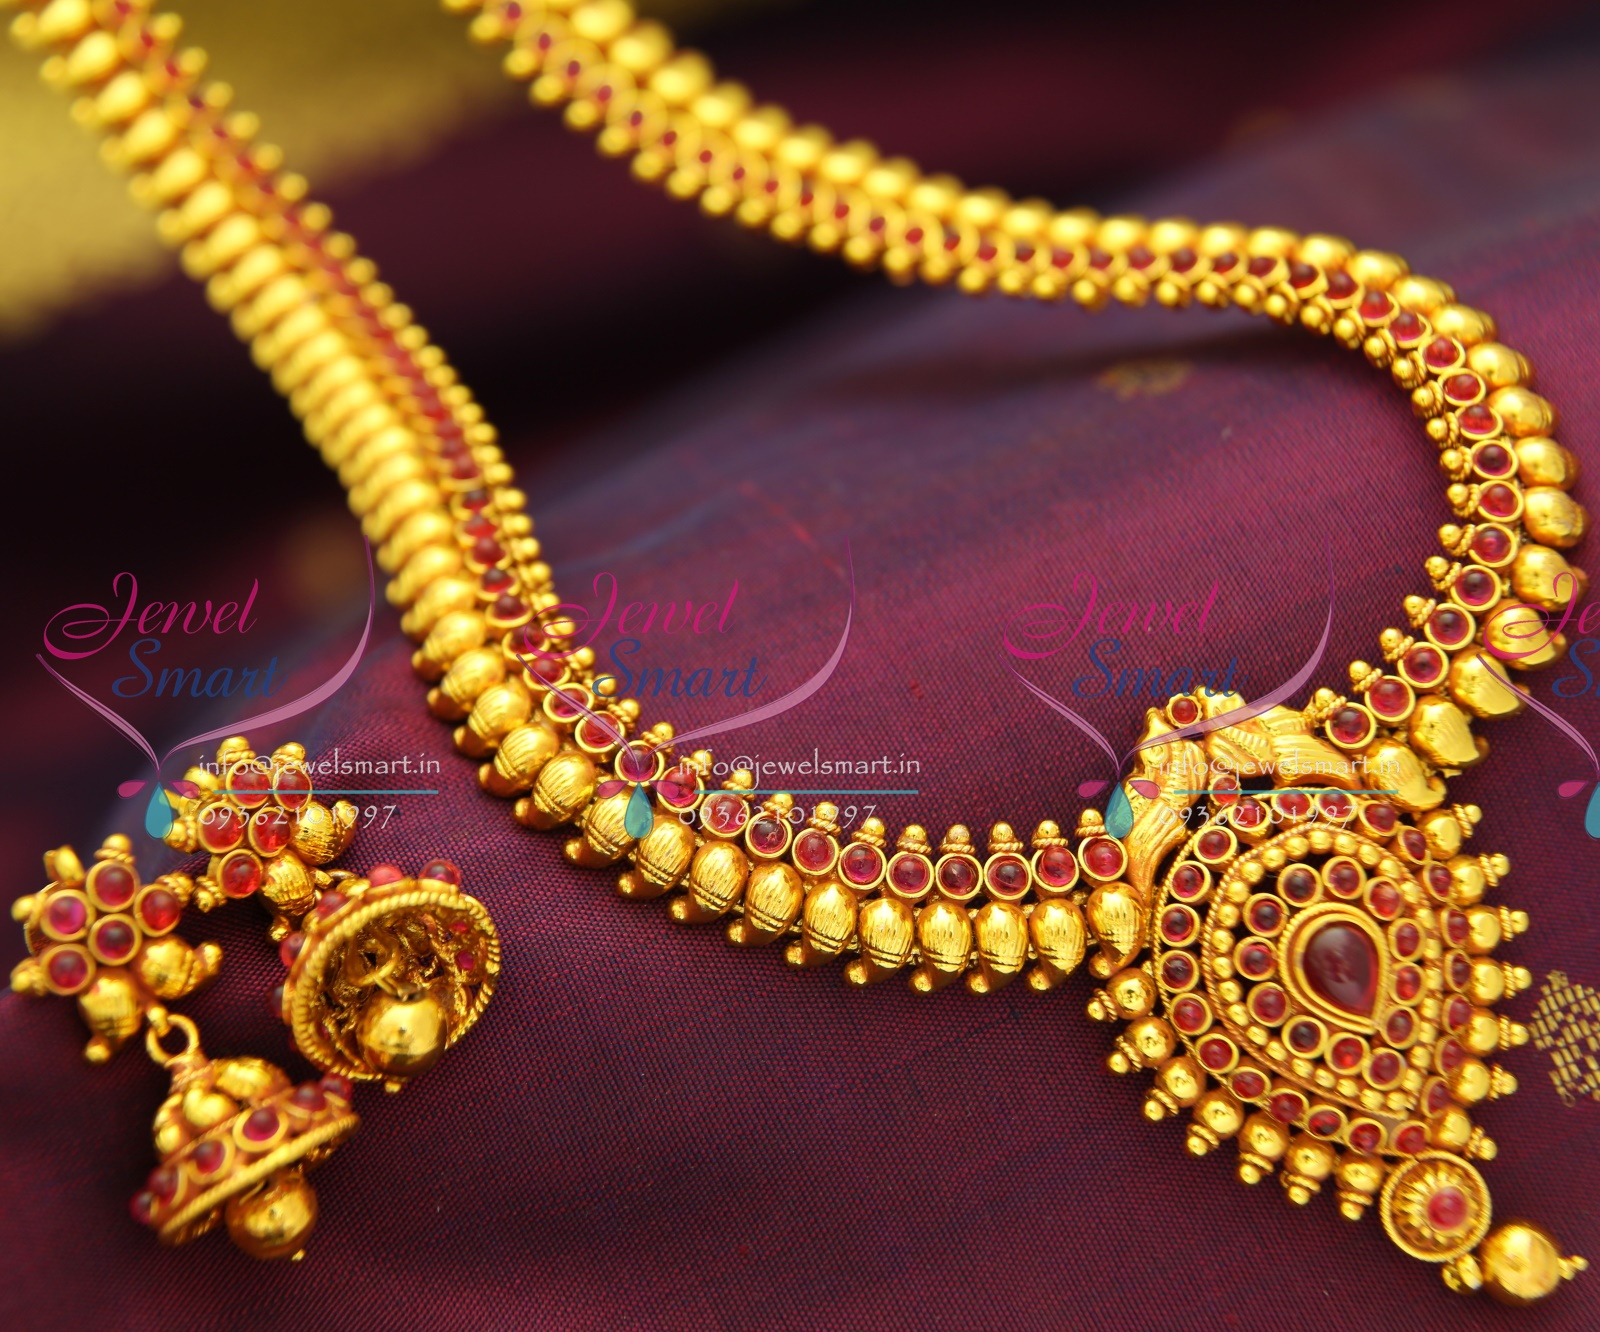 New Gold Long Chain Designs In 30 Grams | Jewellry\'s Website